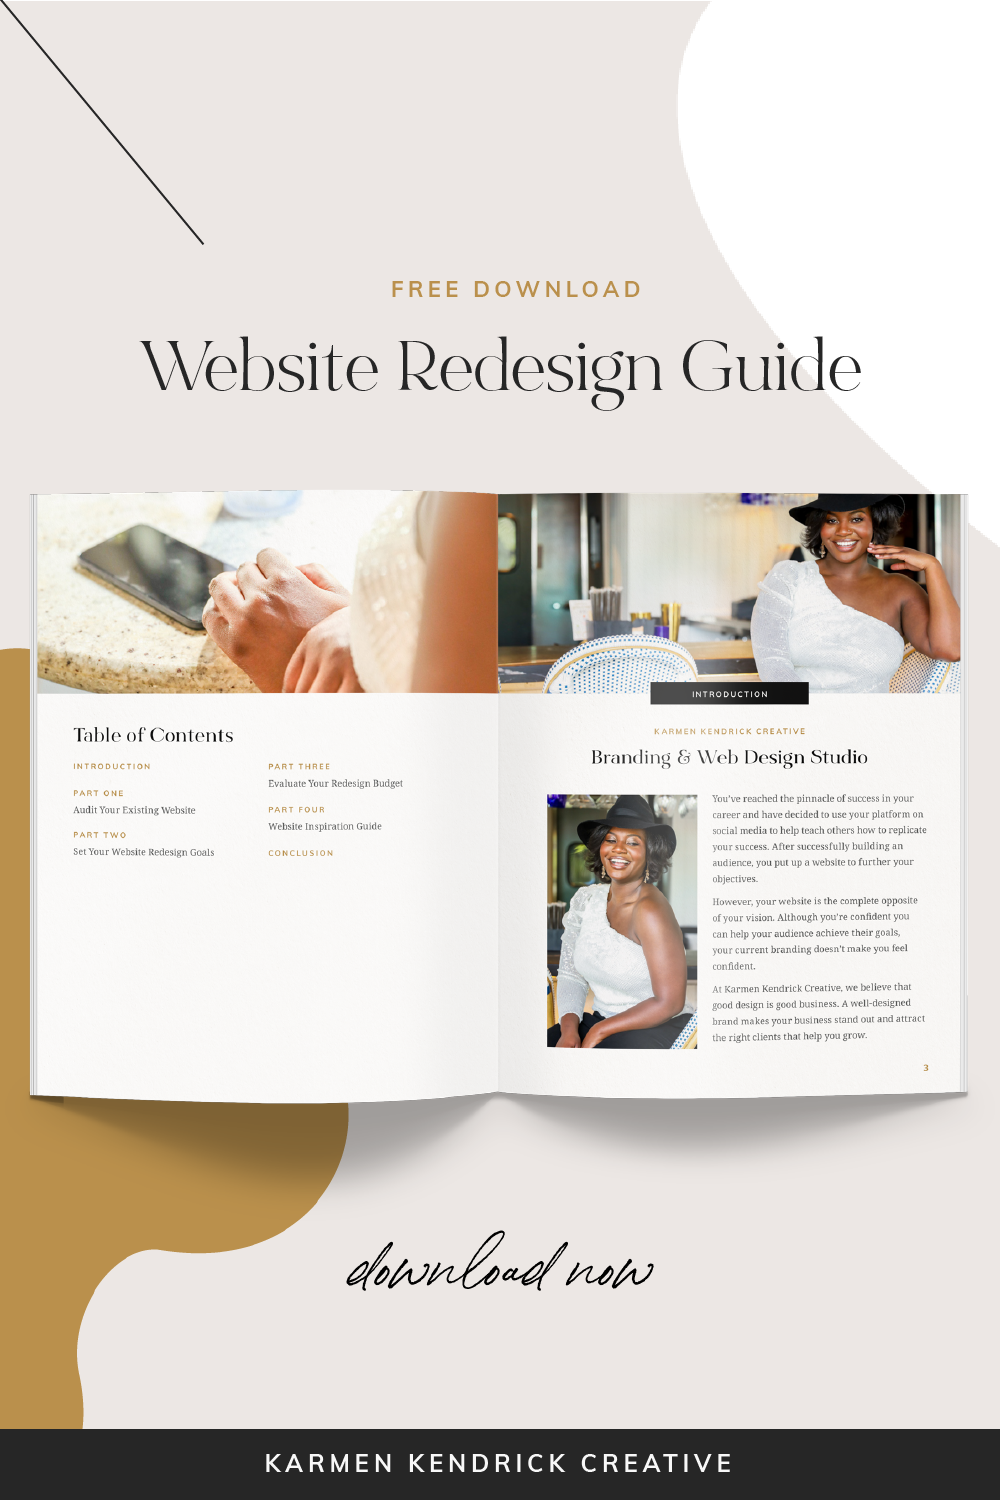 Website Redesign Guide is part of Website redesign, Business web design, Web layout design, Web design studio, Redesign, Web design - Redesigning your website means getting more than a new look  We've put together a guide full of tips and insights for how to approach your website redesign